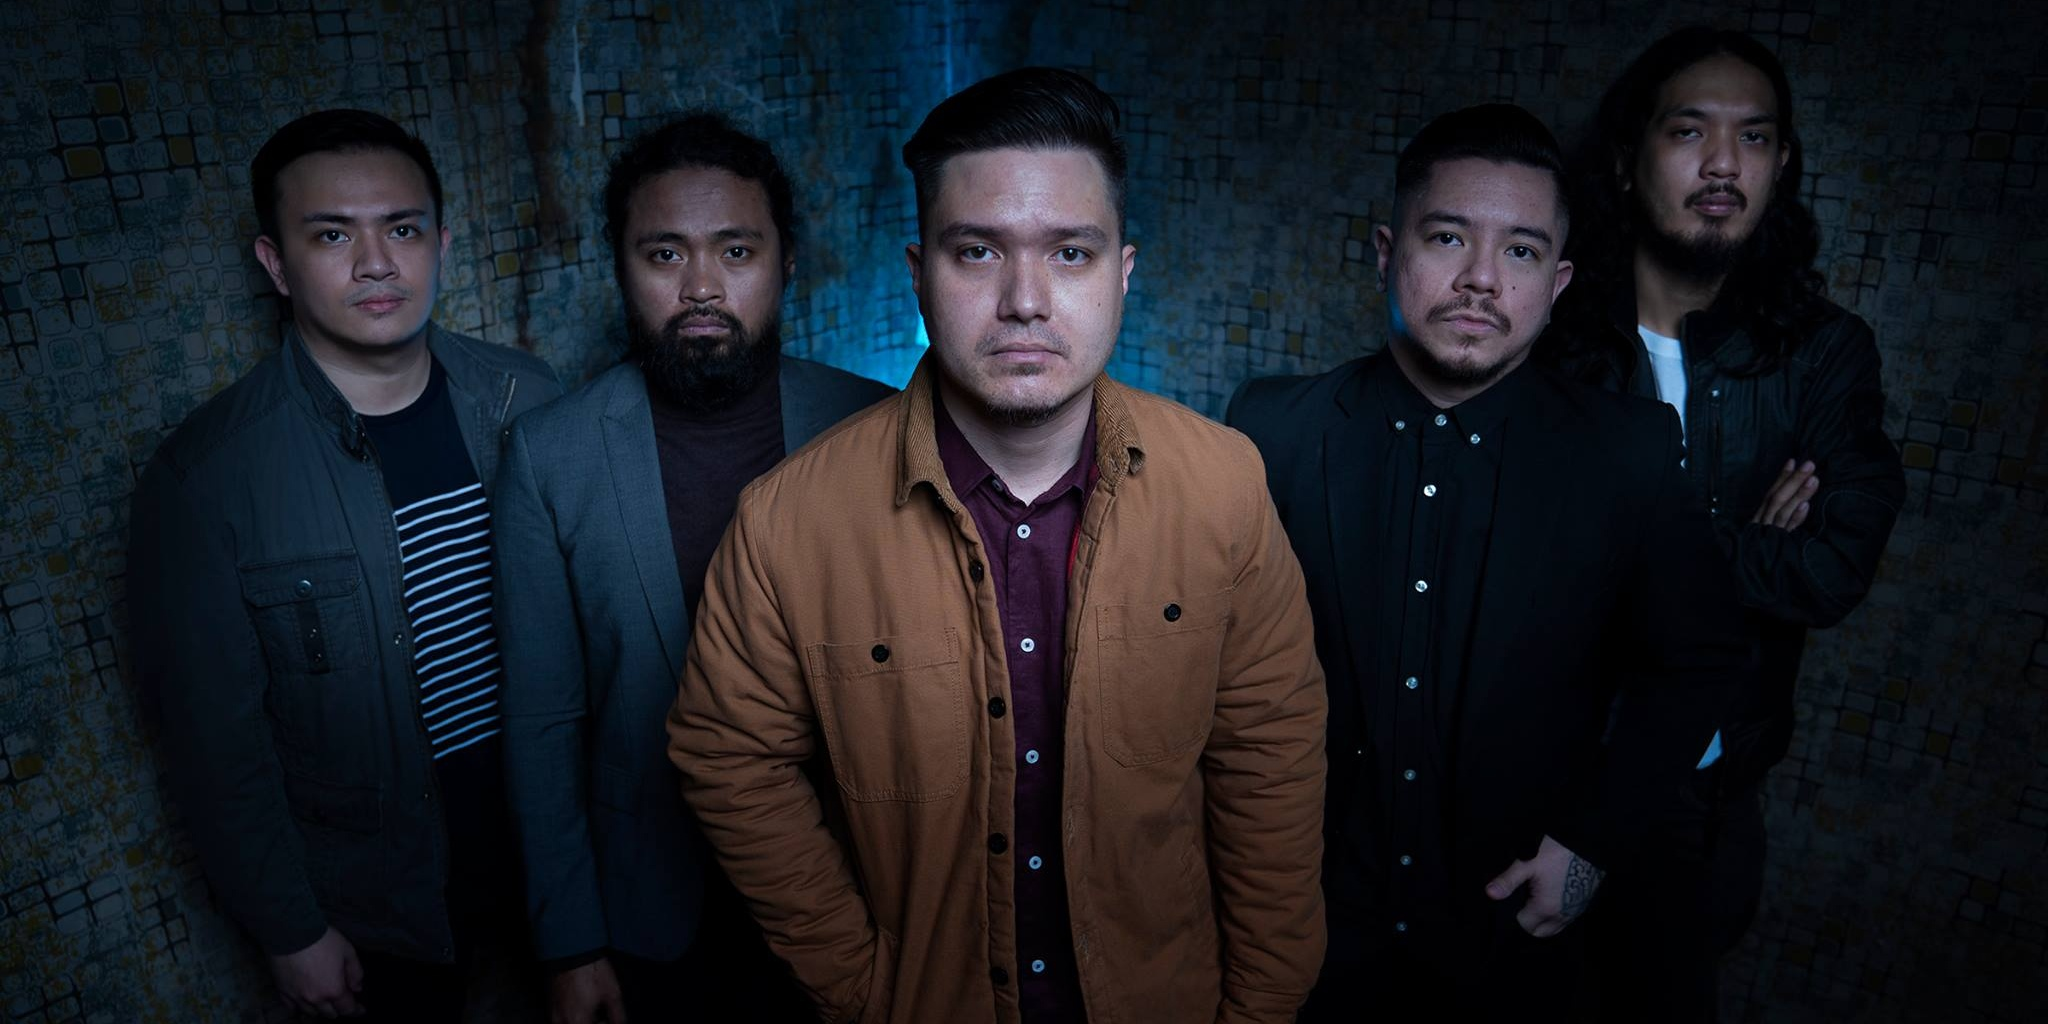 Faspitch to hold 'Flame' music video launch with Urbandub, VIE, and Delaney